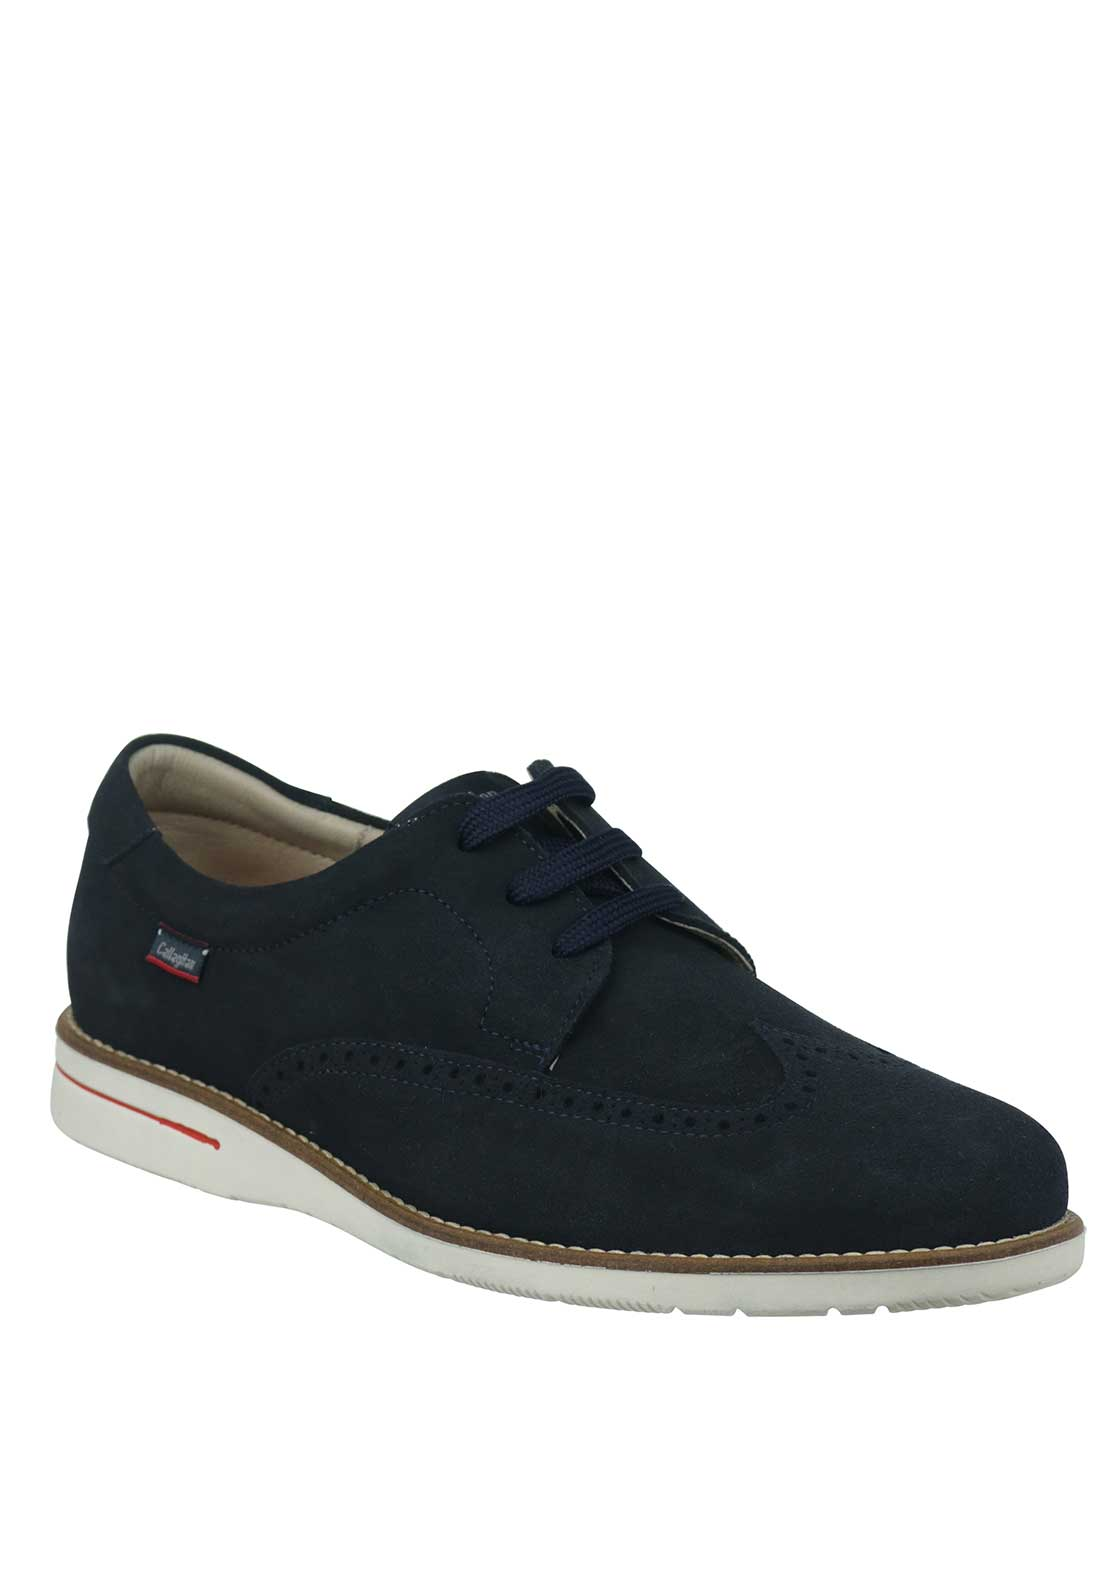 Callaghan Lace Up Suede Brogue Shoe, Navy